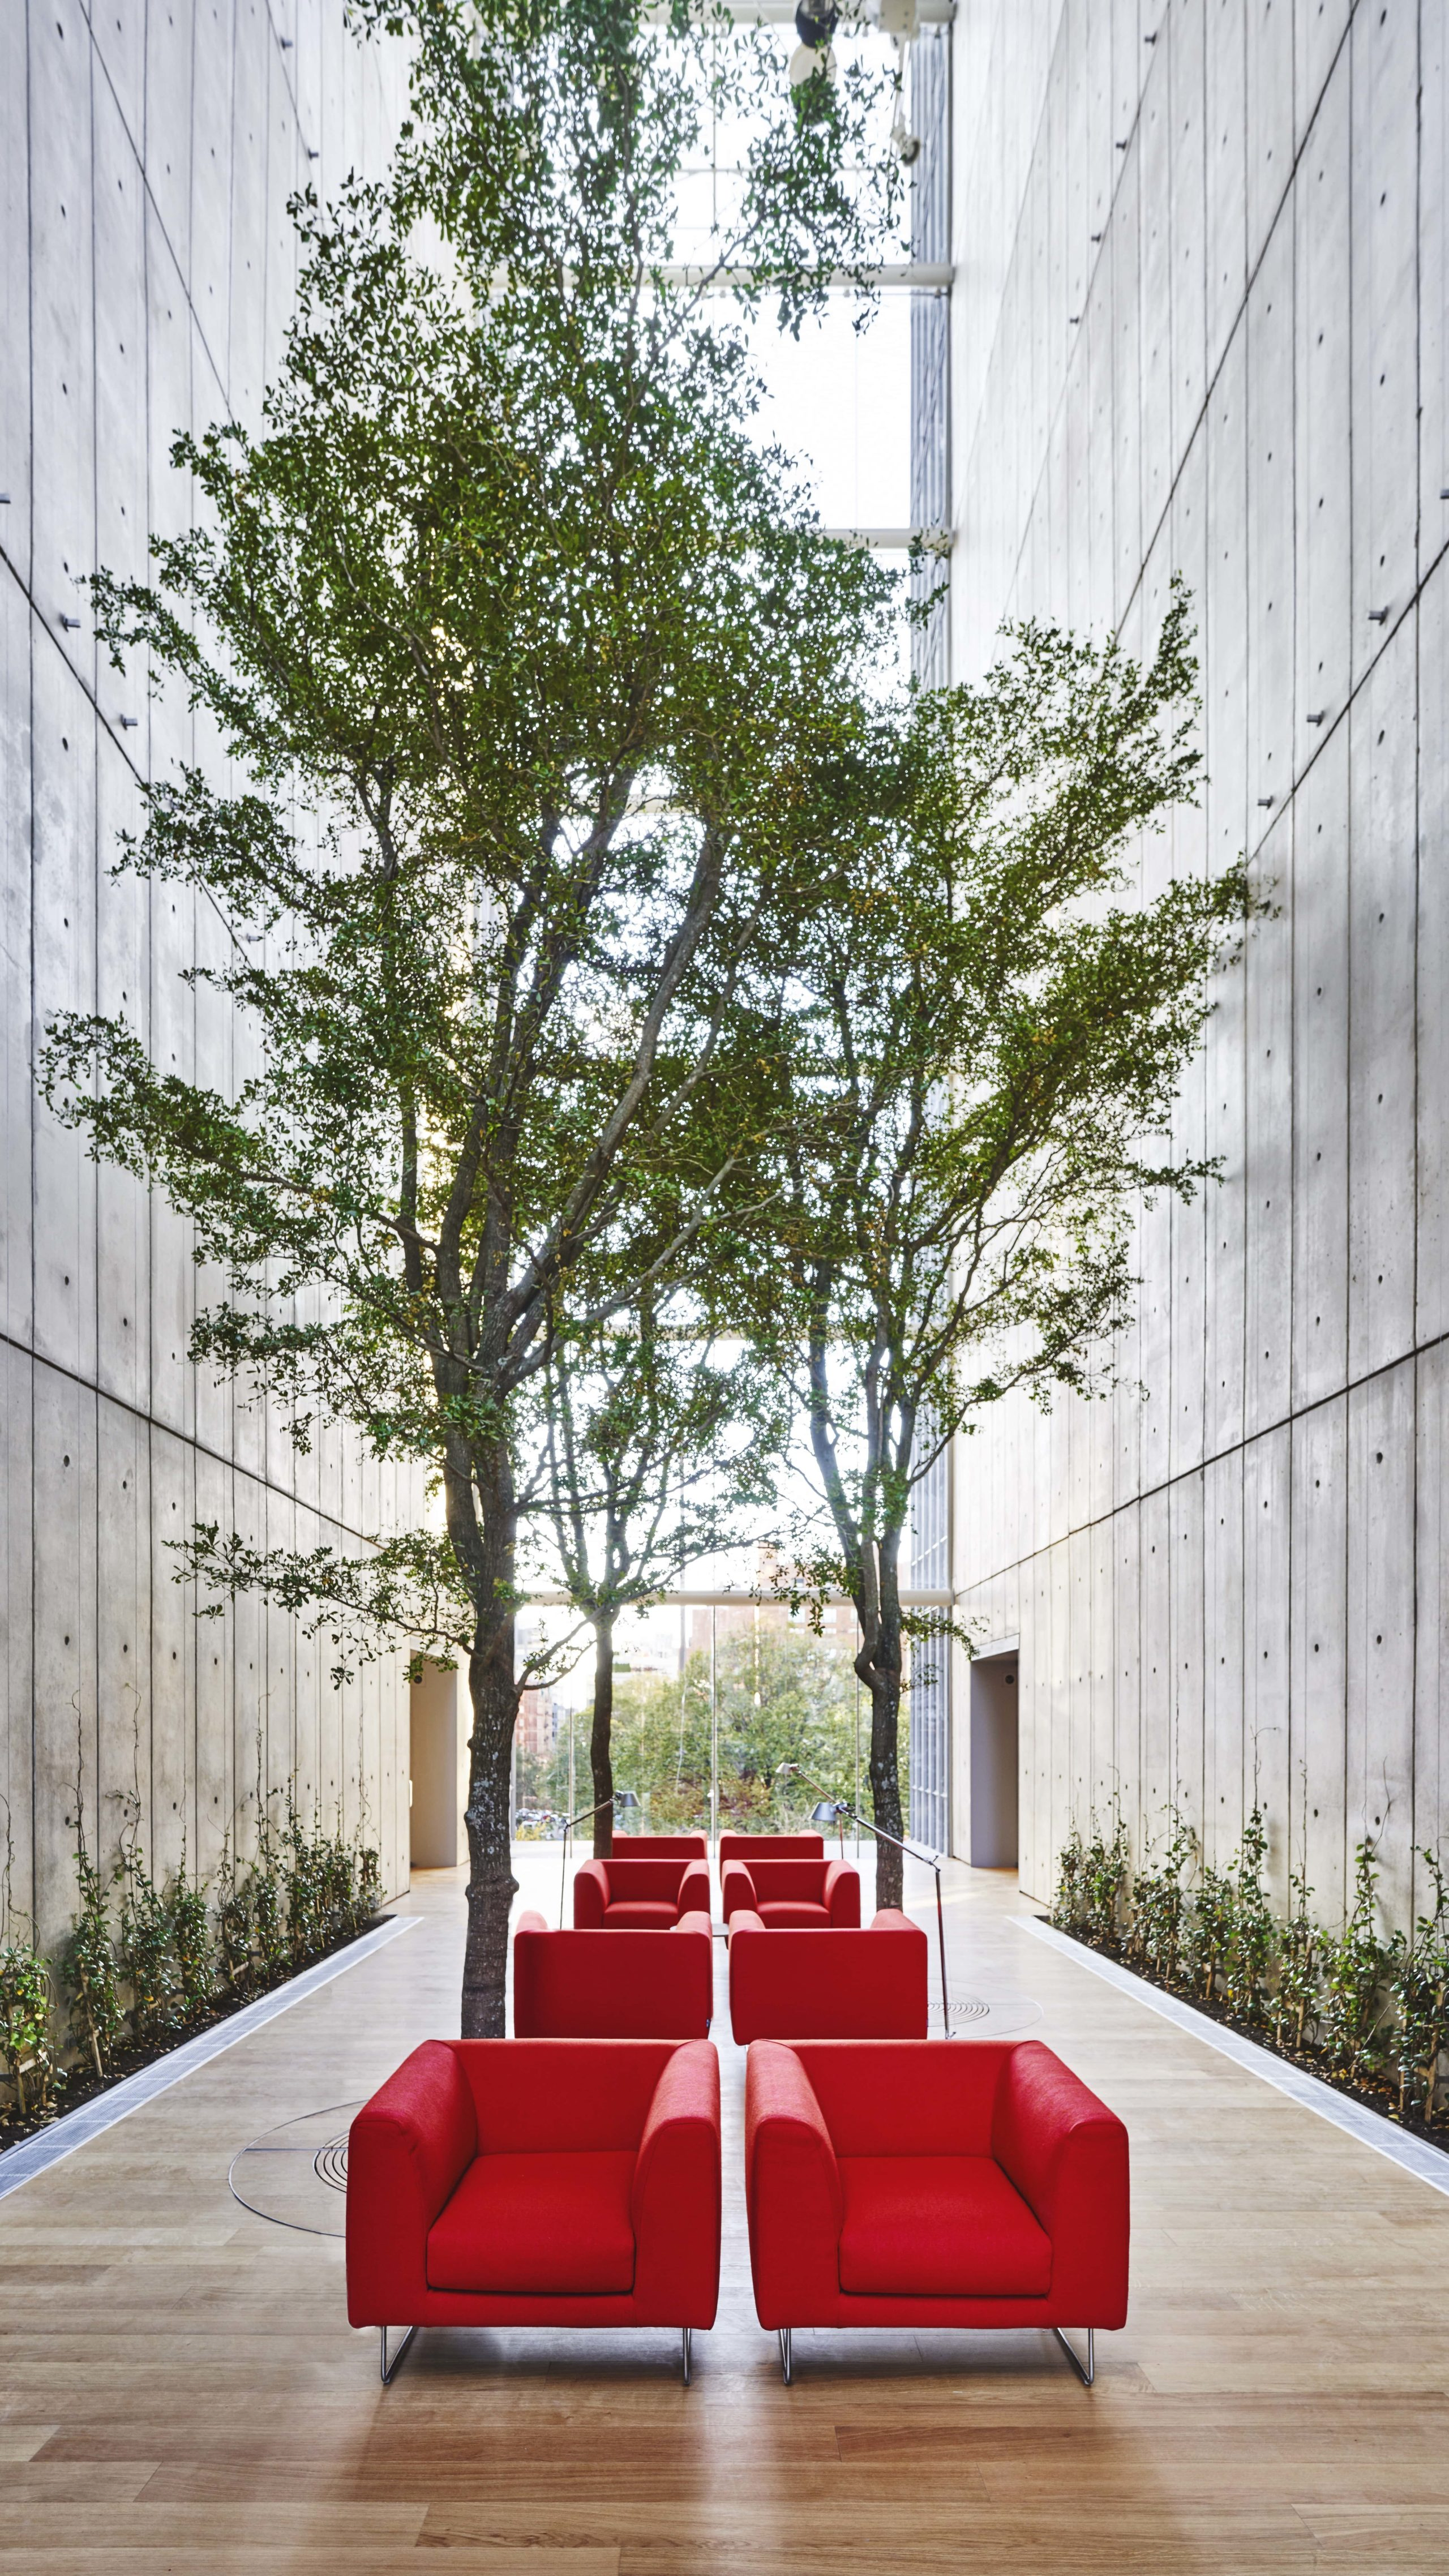 Exterior view of 565 Broome condominiums conservatory in New York City. Has red chairs in the middle and decorative trees.